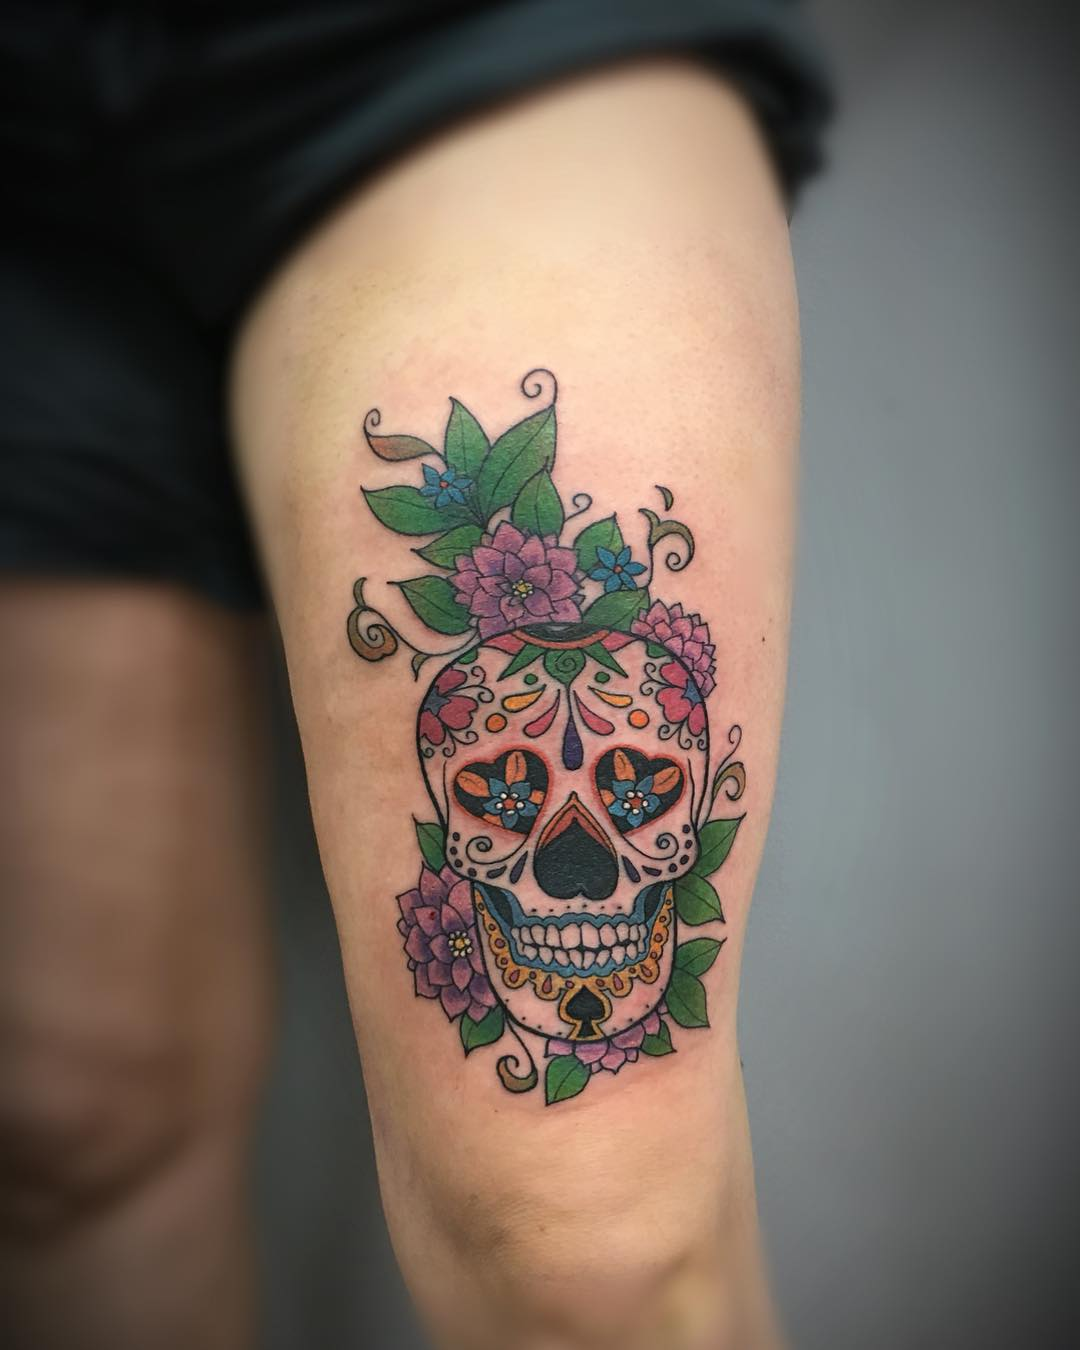 kick-ass-skull-tattoos-for-men-women